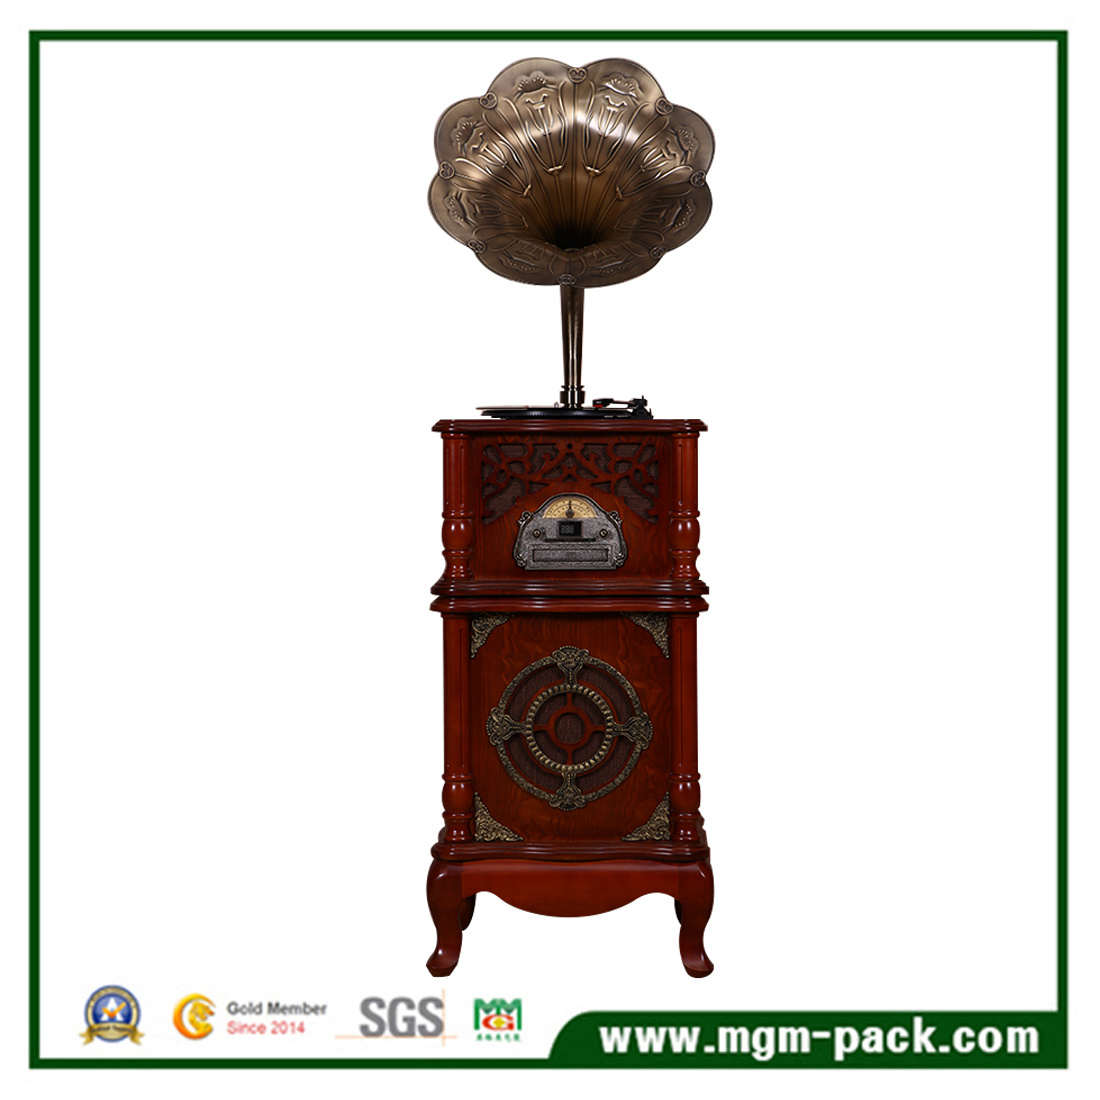 2017 New Arrival Wooden Phonograph as Gift